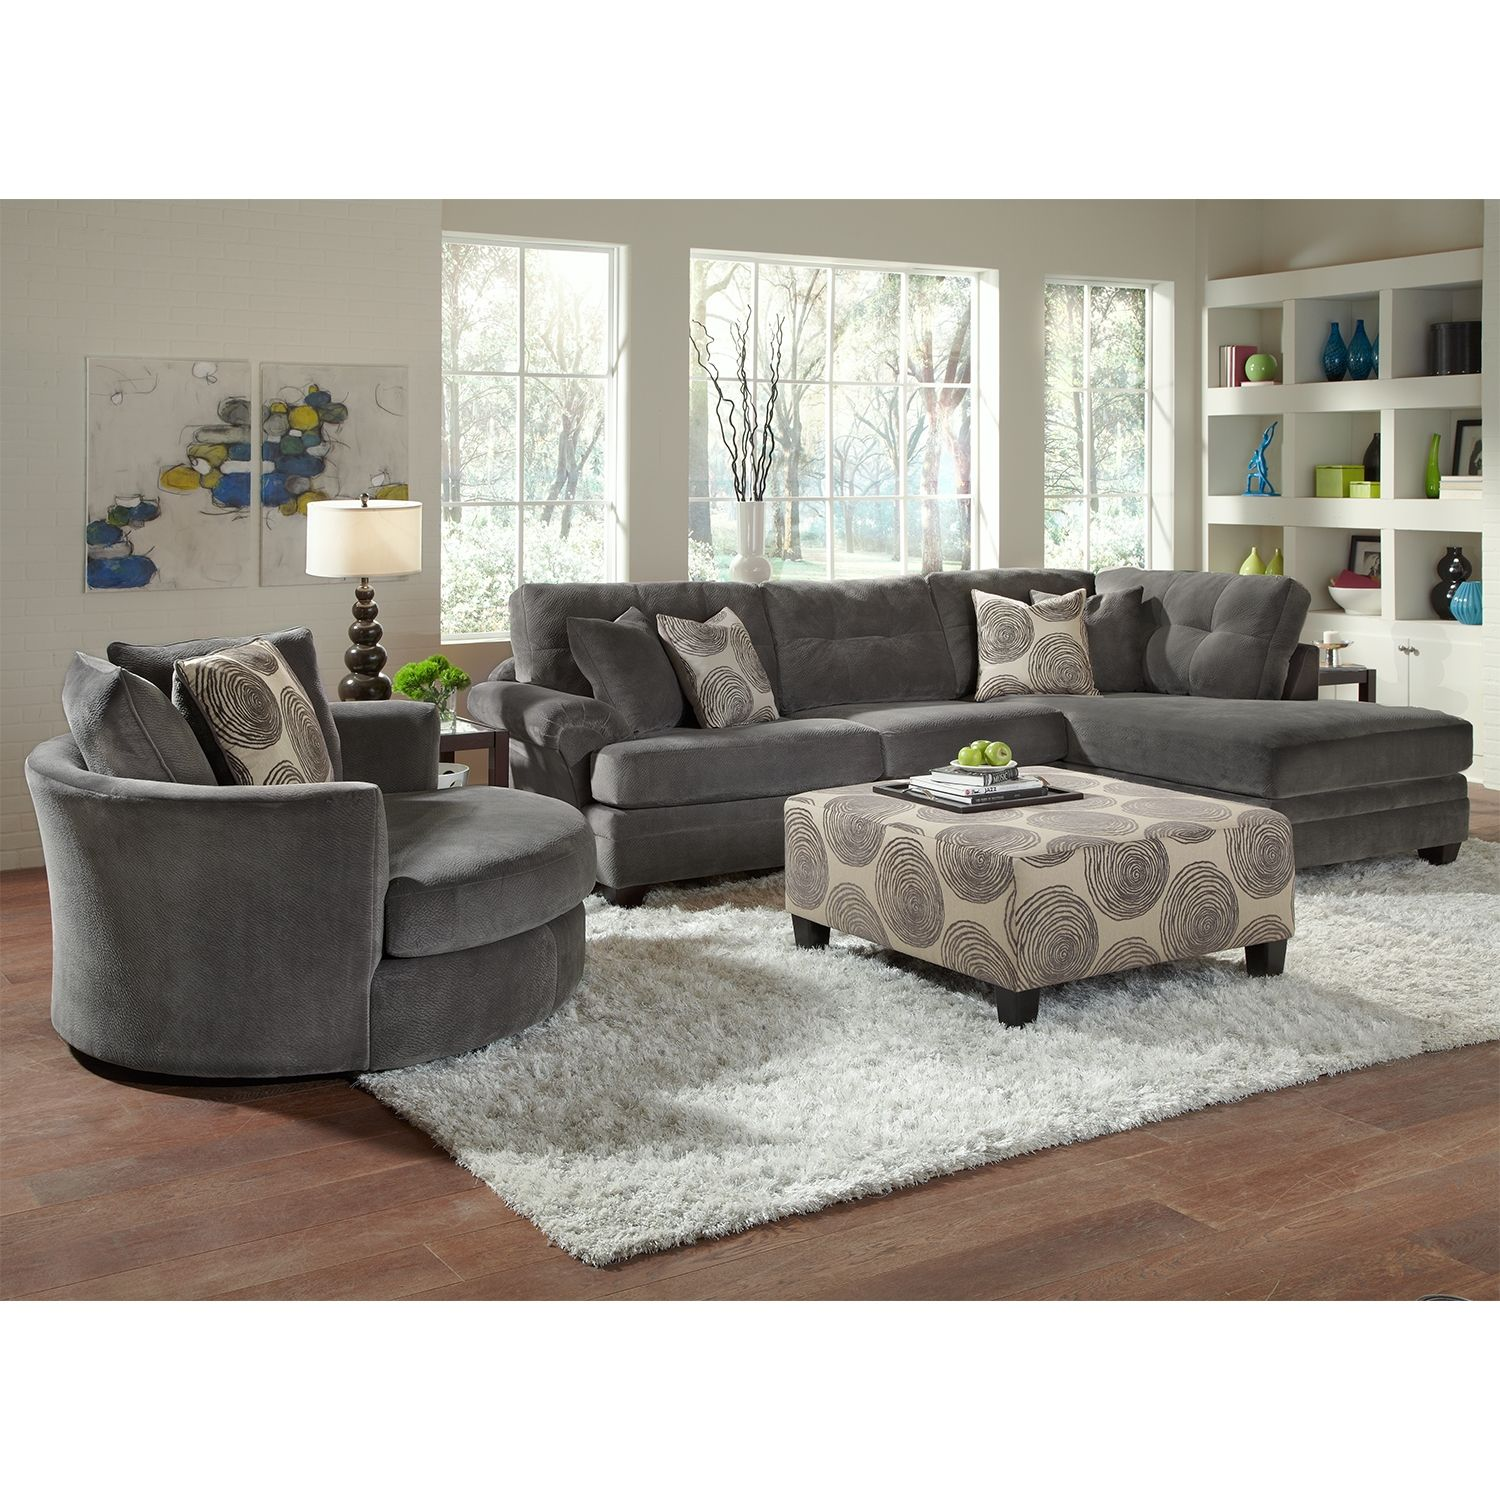 Living Room Furniture · Catalina Gray Upholstery 2 Pc. Sectional | Furniture .com